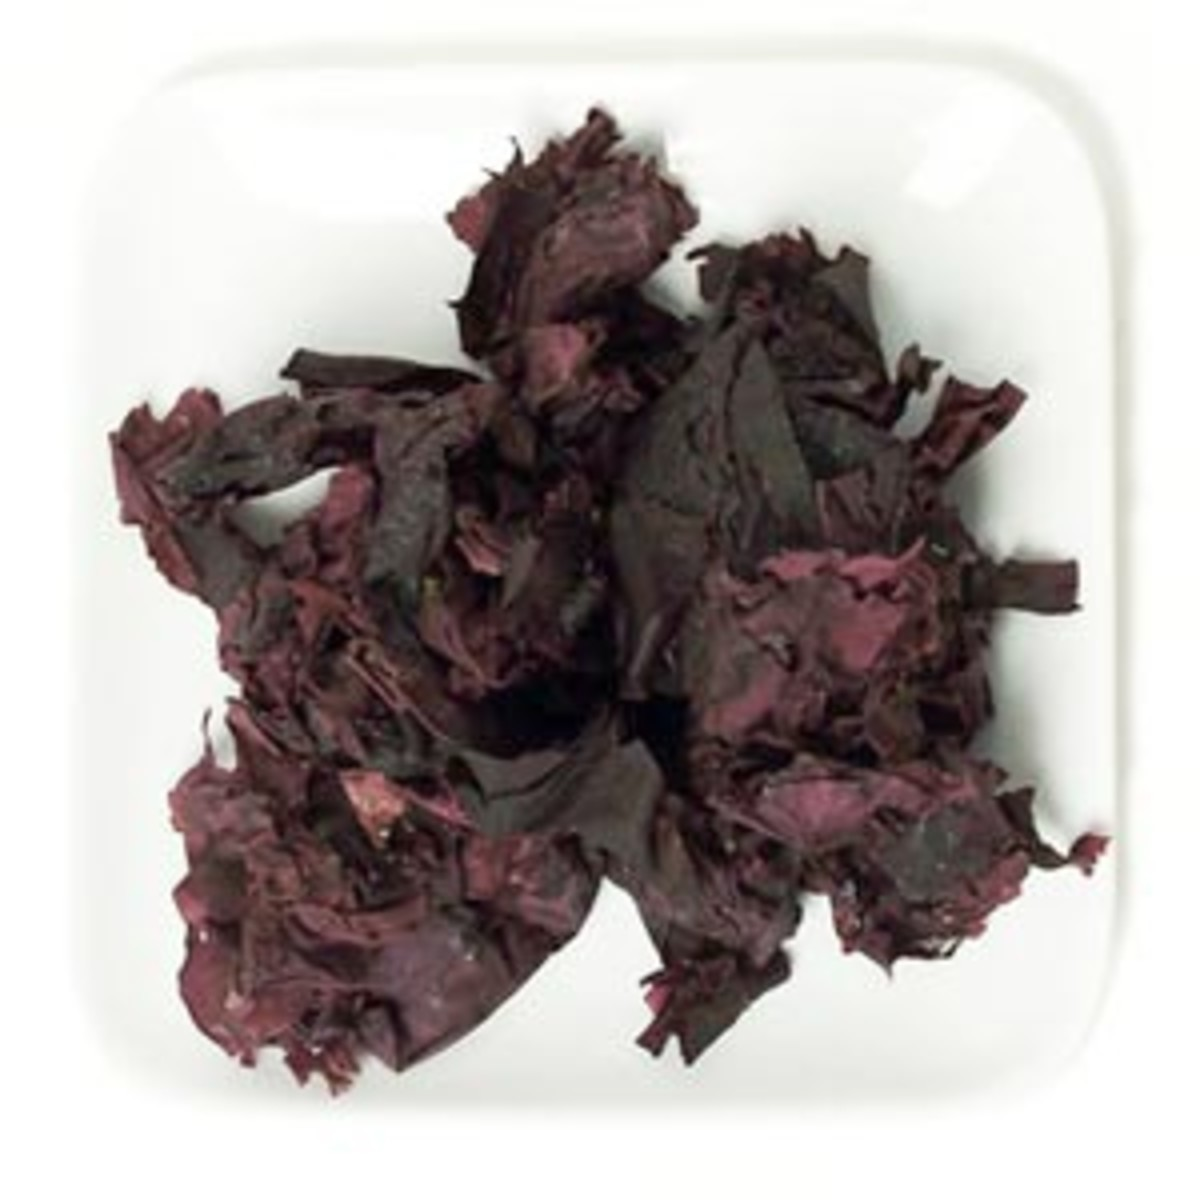 Dulse, a seaweed for snacks & salads